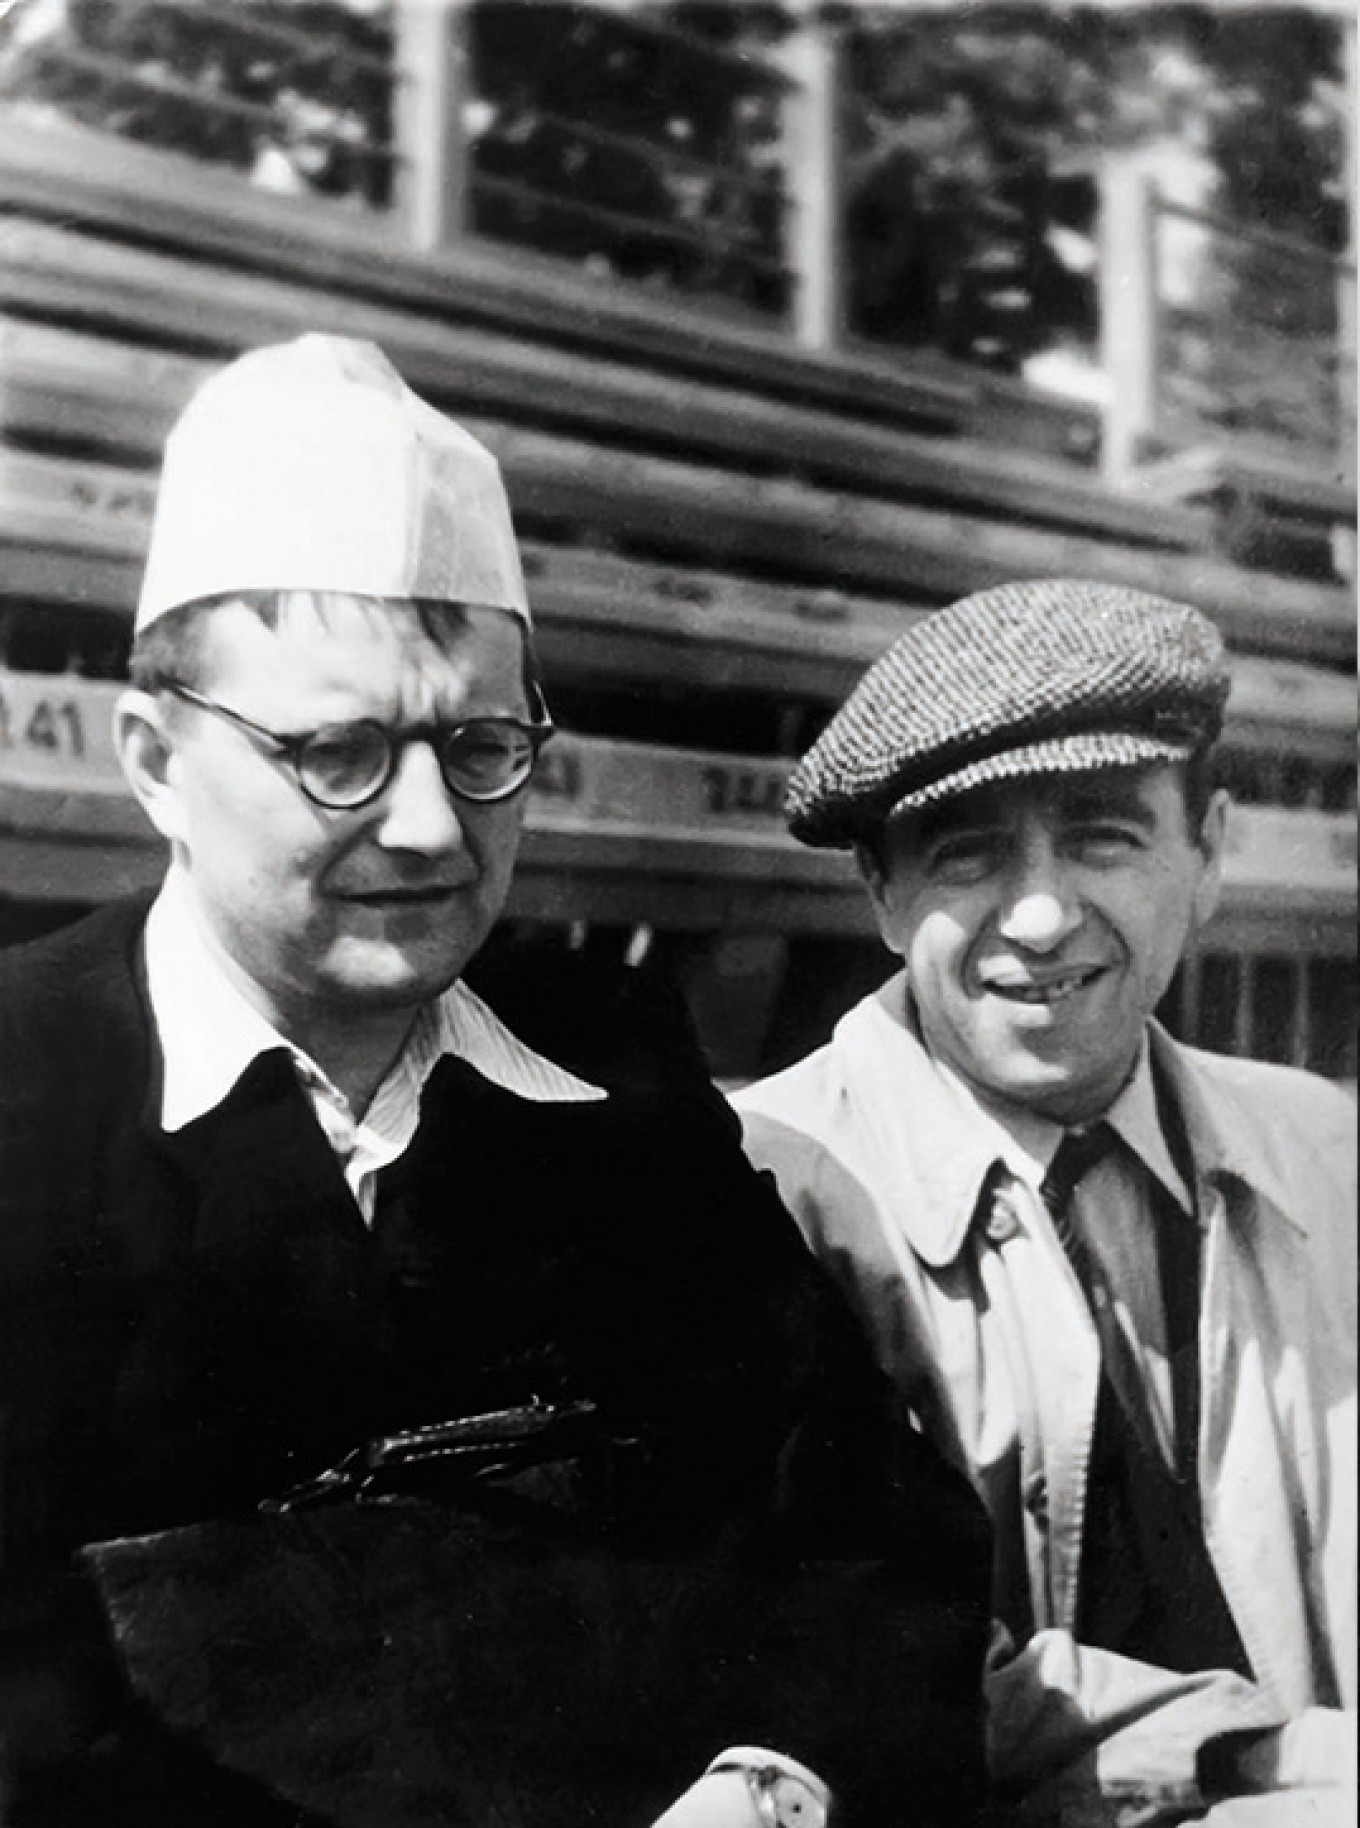 Shostakovich and Matvei  Blanter at the old Moscow Dinamo Stadium, July 1947 Courtesy of DSCH Publishers